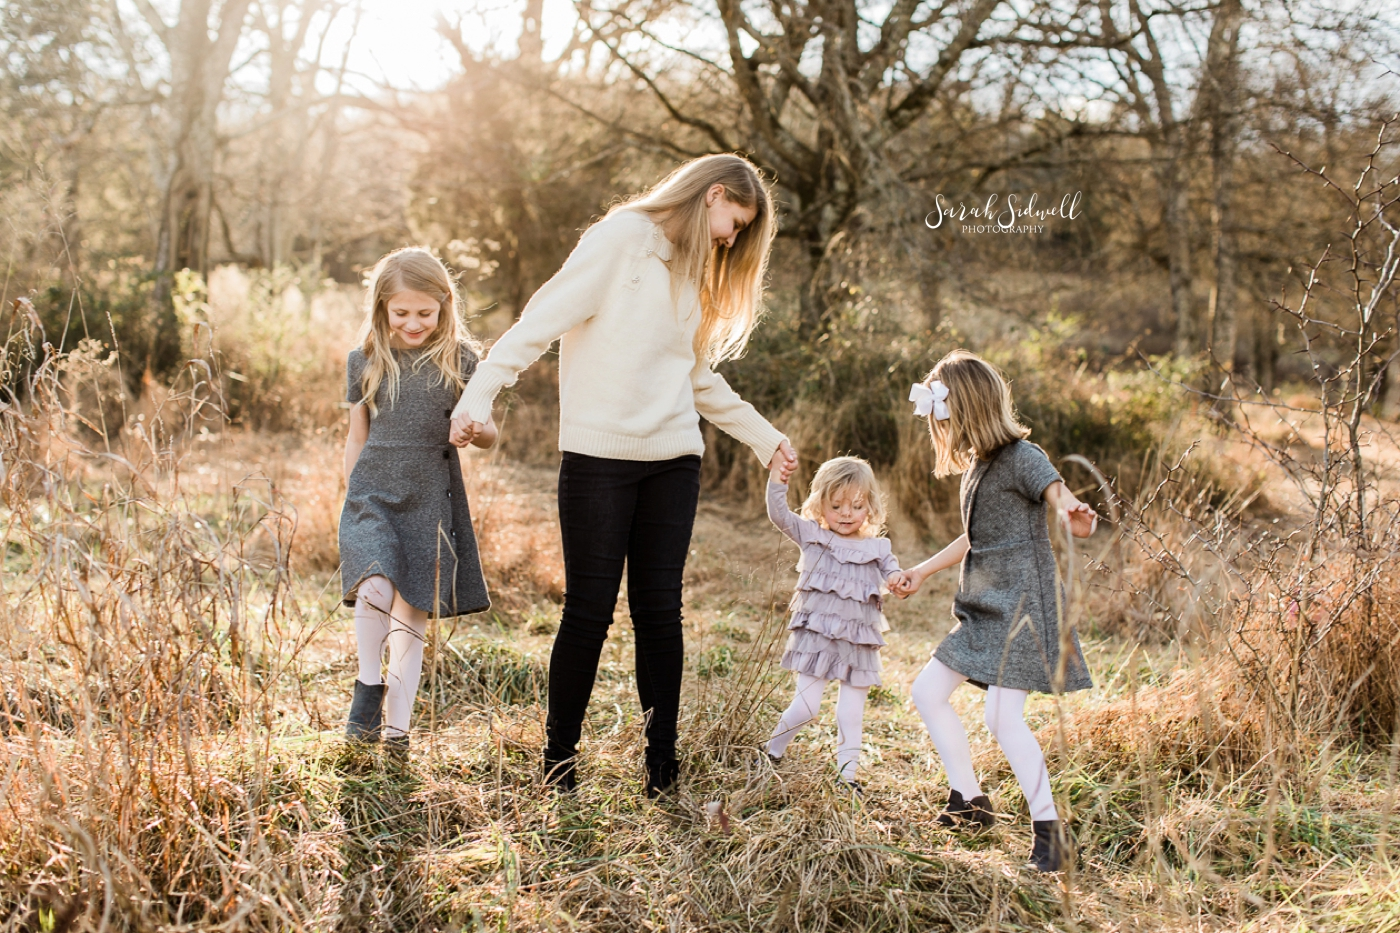 Nashville Family Pictures | Sarah Sidwell Photography